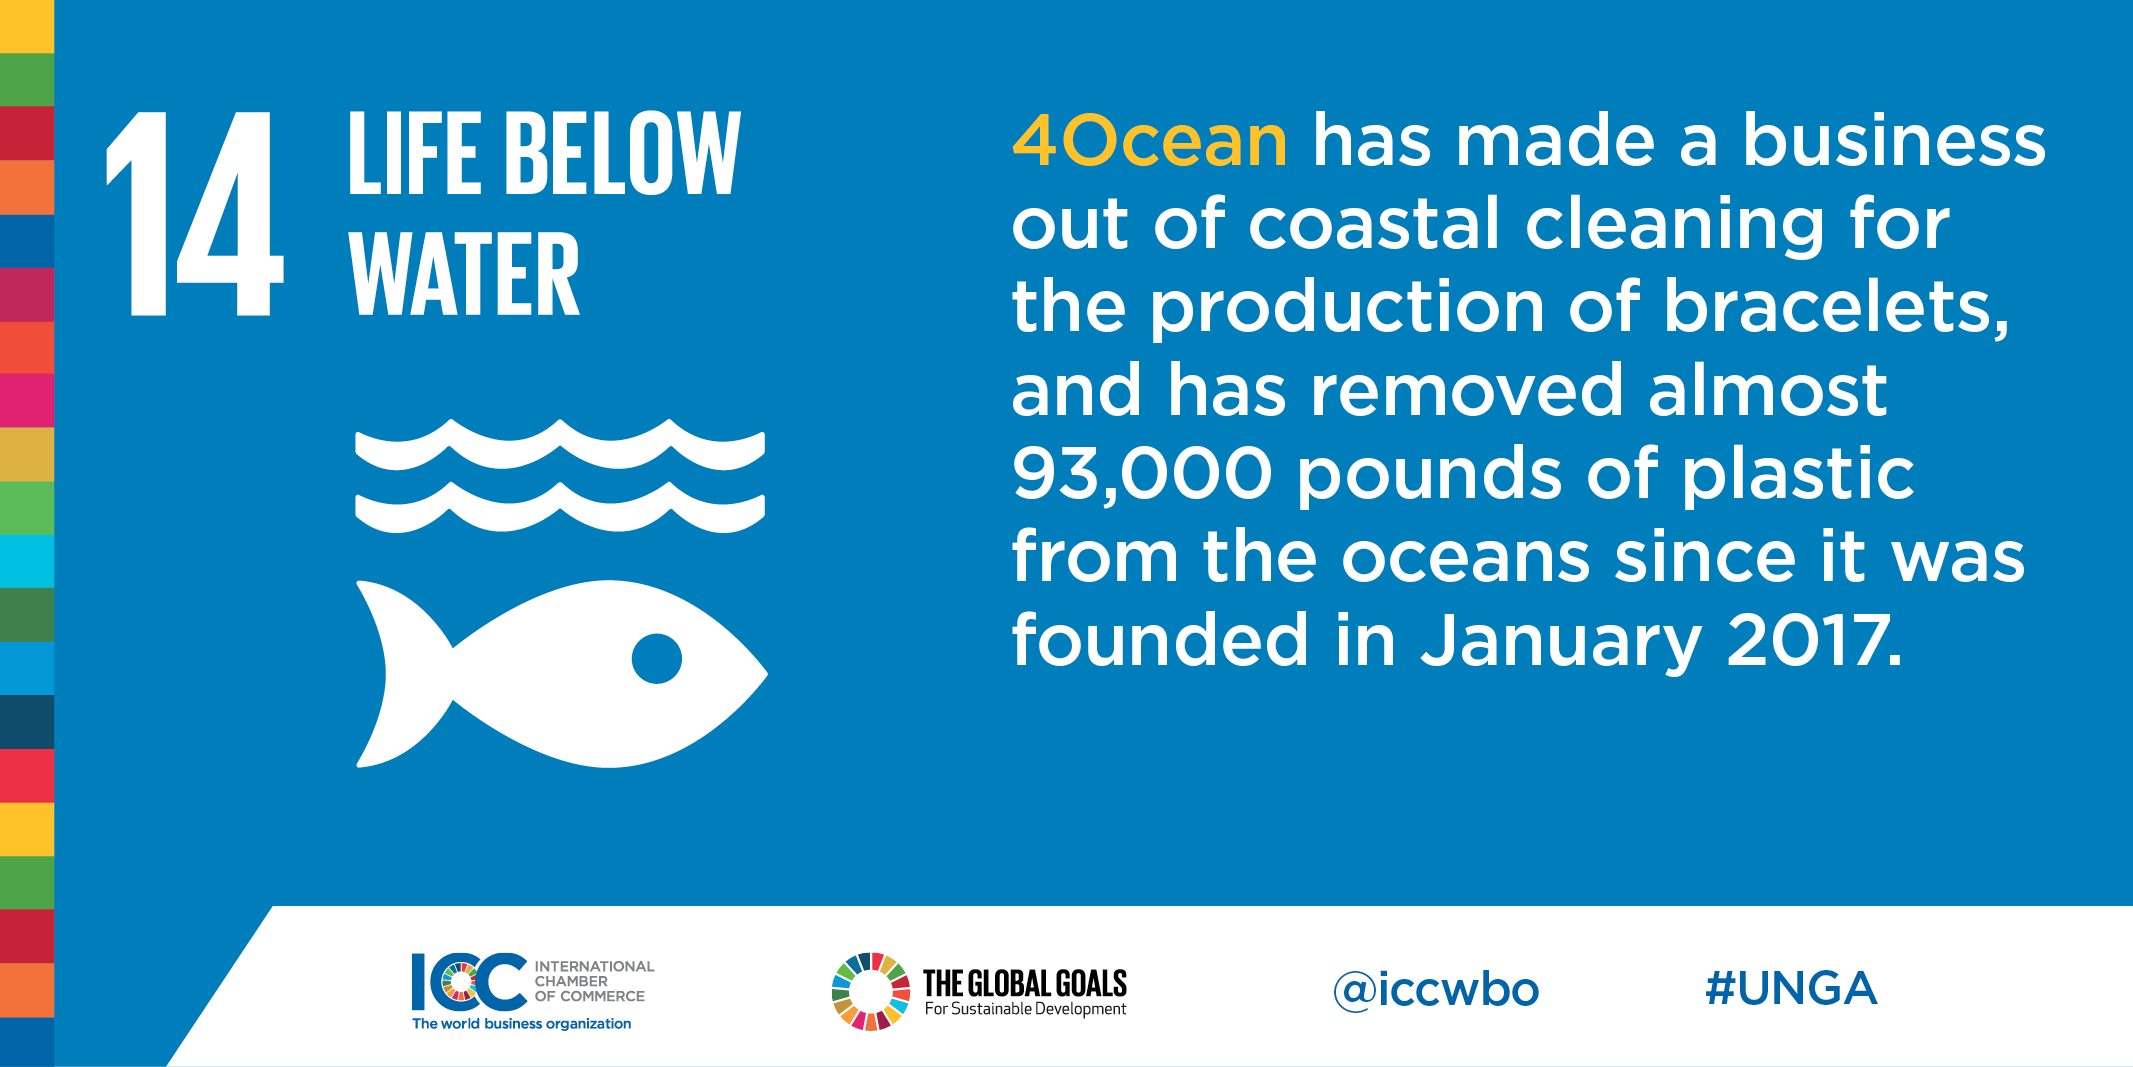 ICC Business Commits Plastic Pollution 4ocean